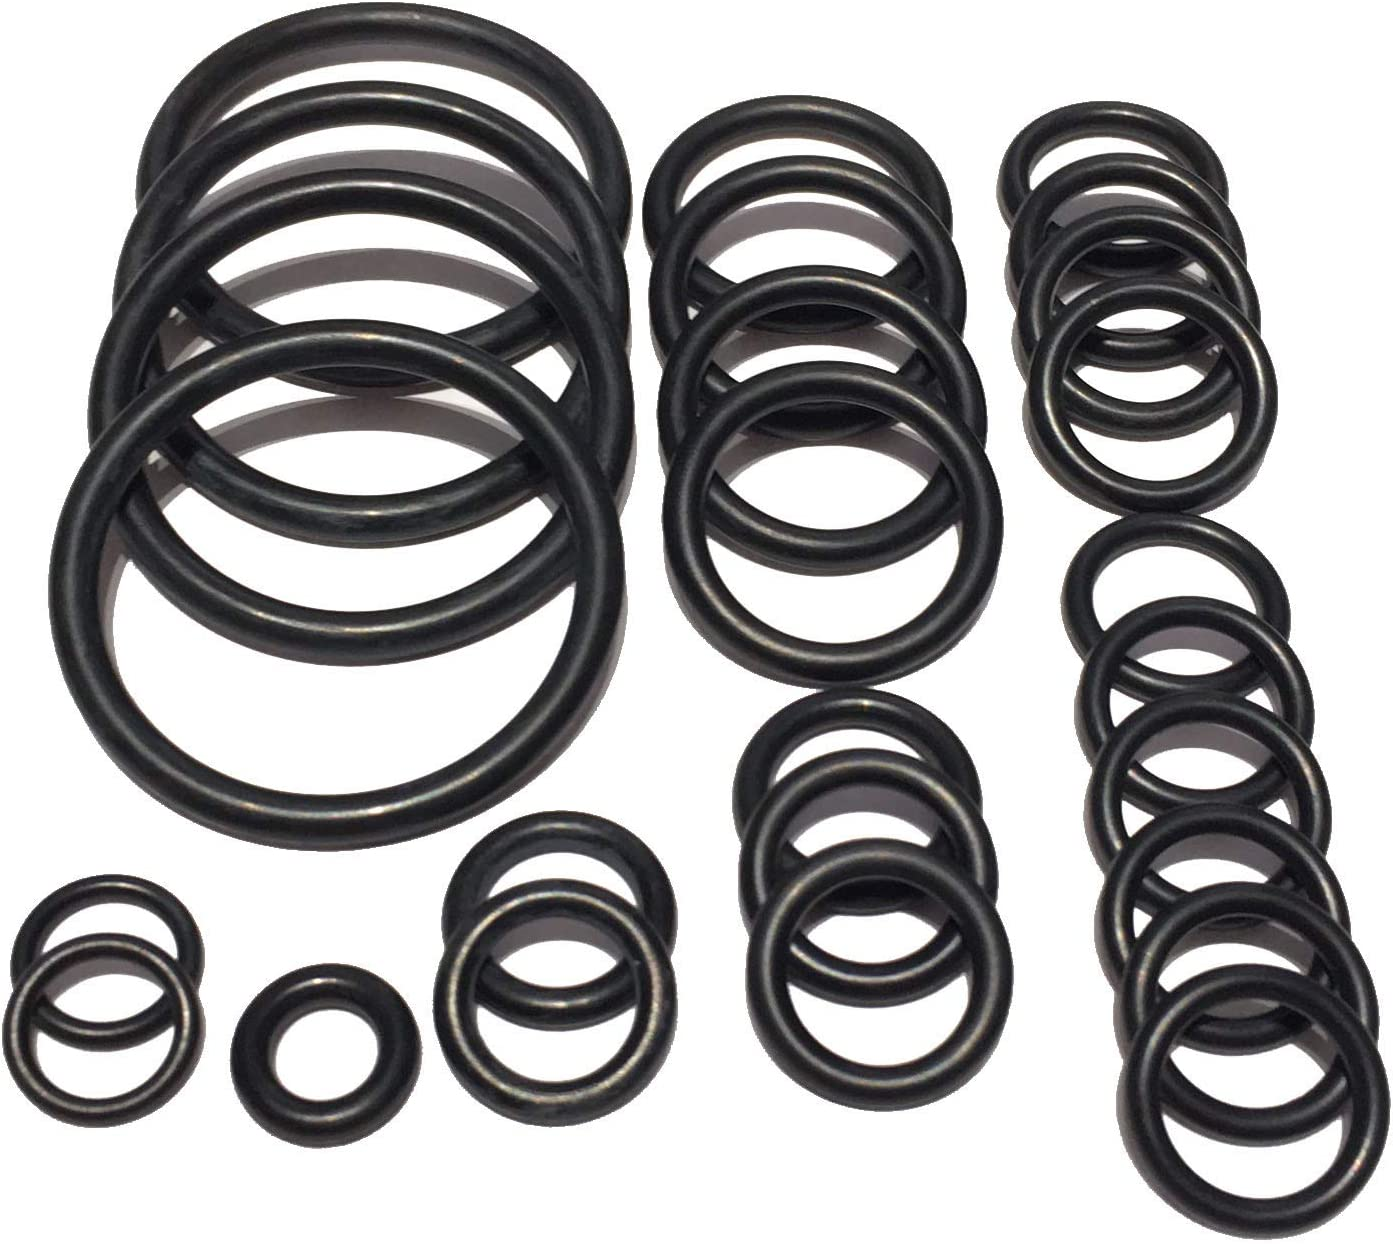 Cooling system radiator hose O ring set For BMW E53 X5 N62 Engine 4.4 Liter